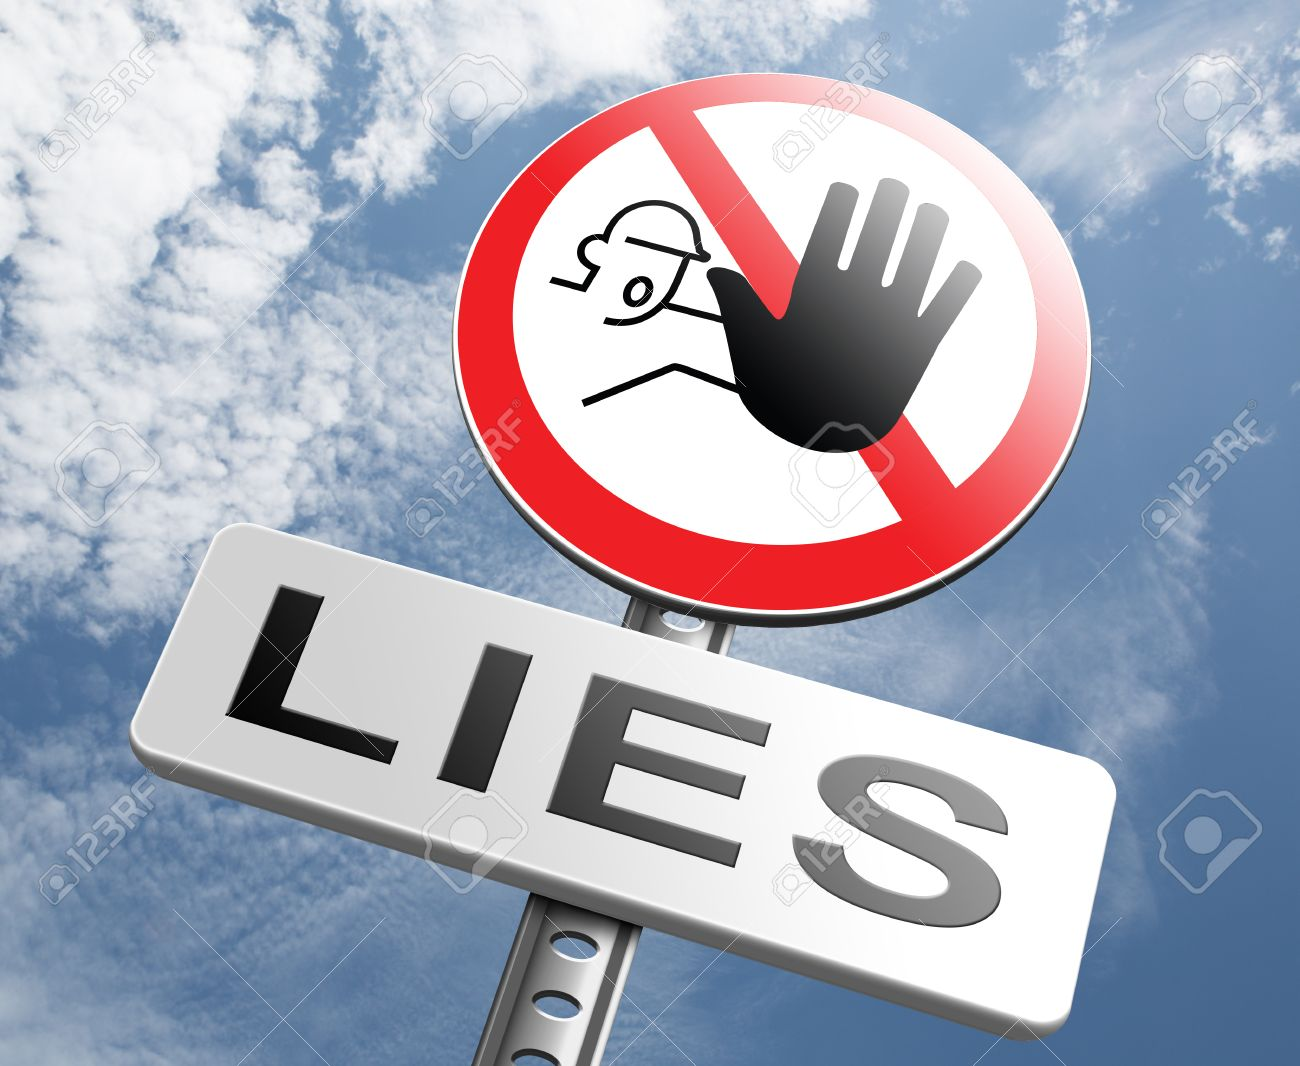 No More Lies Stop Lying Tell The Truth And Be Honest No Misleading.. Stock  Photo, Picture And Royalty Free Image. Image 40380191.